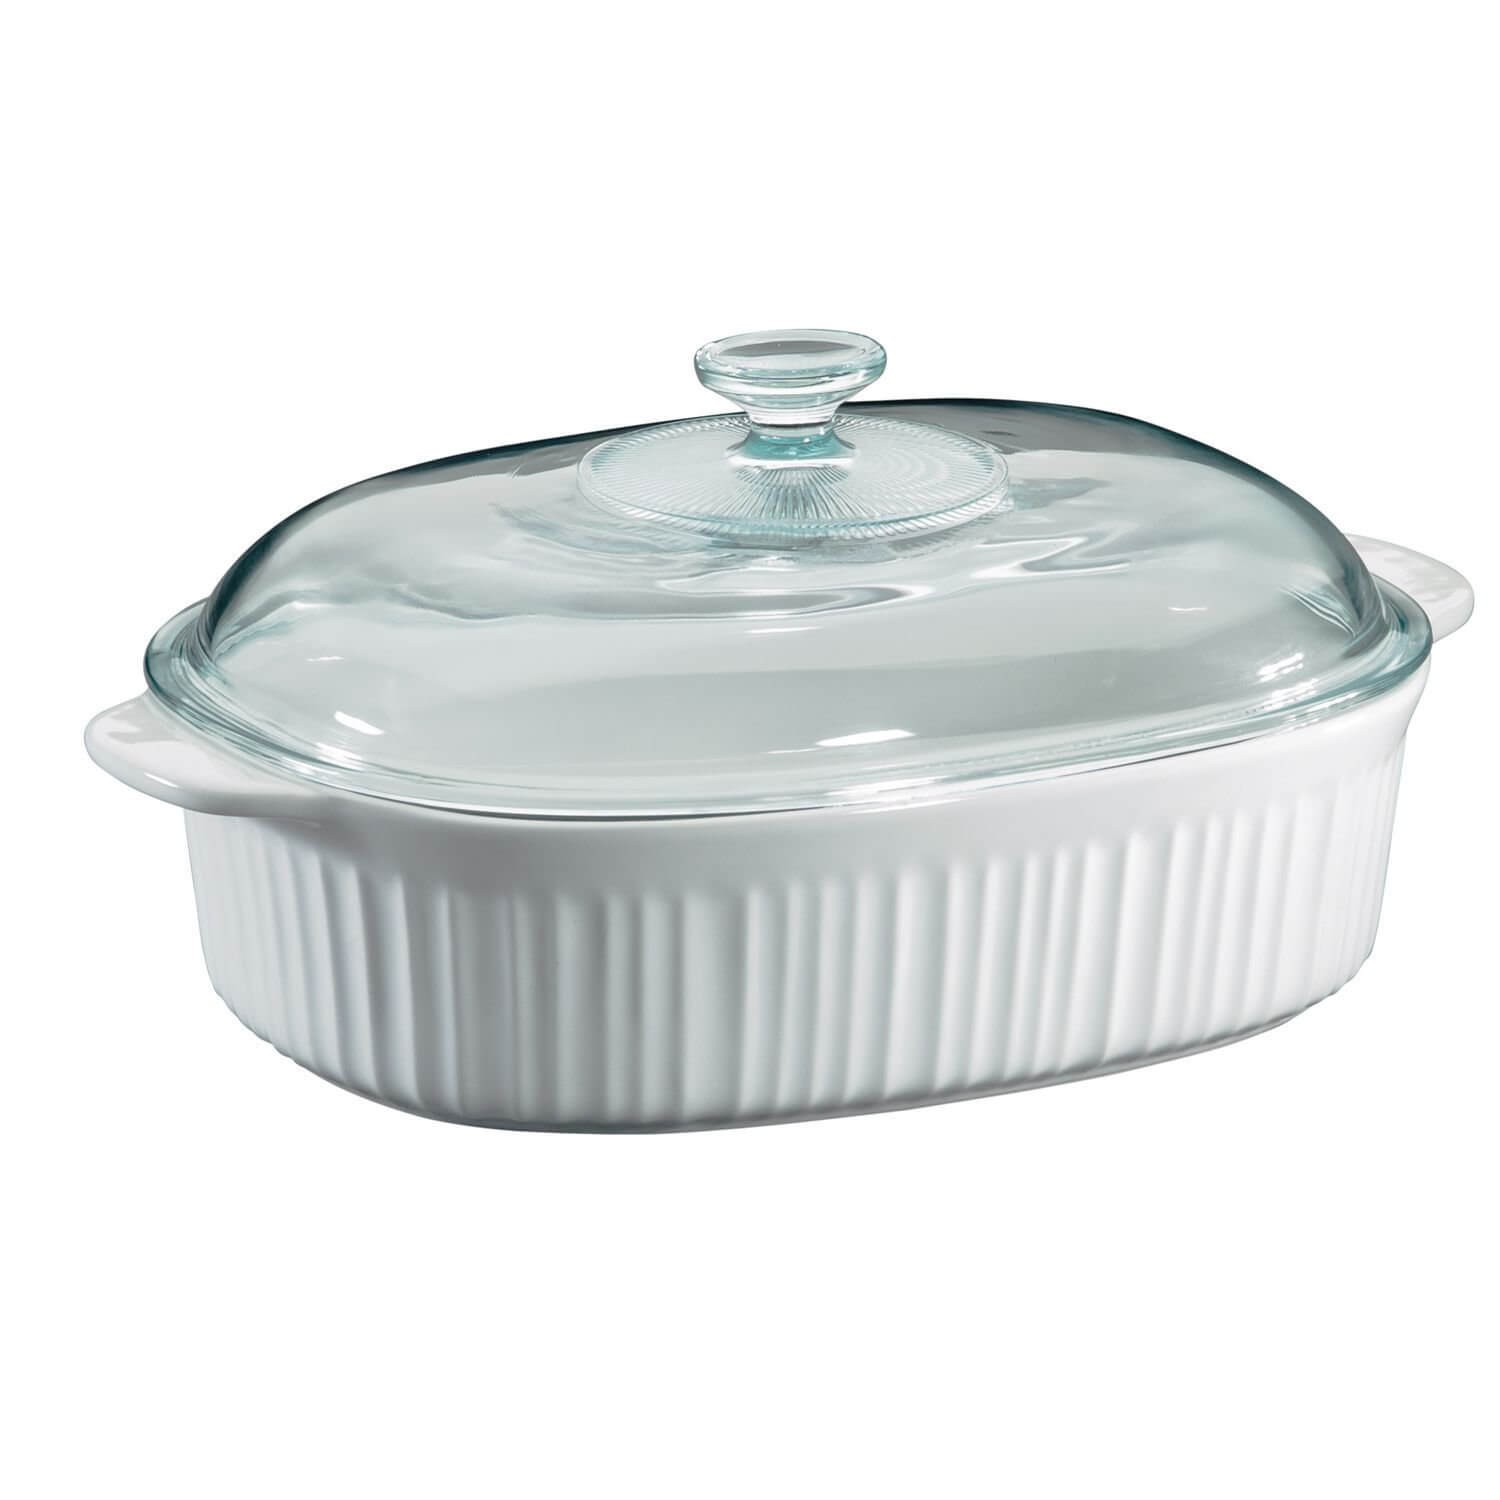 corningware casserole dish, CorningWare 6002278 French White Oval 4 Qt.Casserole Dish, corningware oven safe, ceramic baking dish